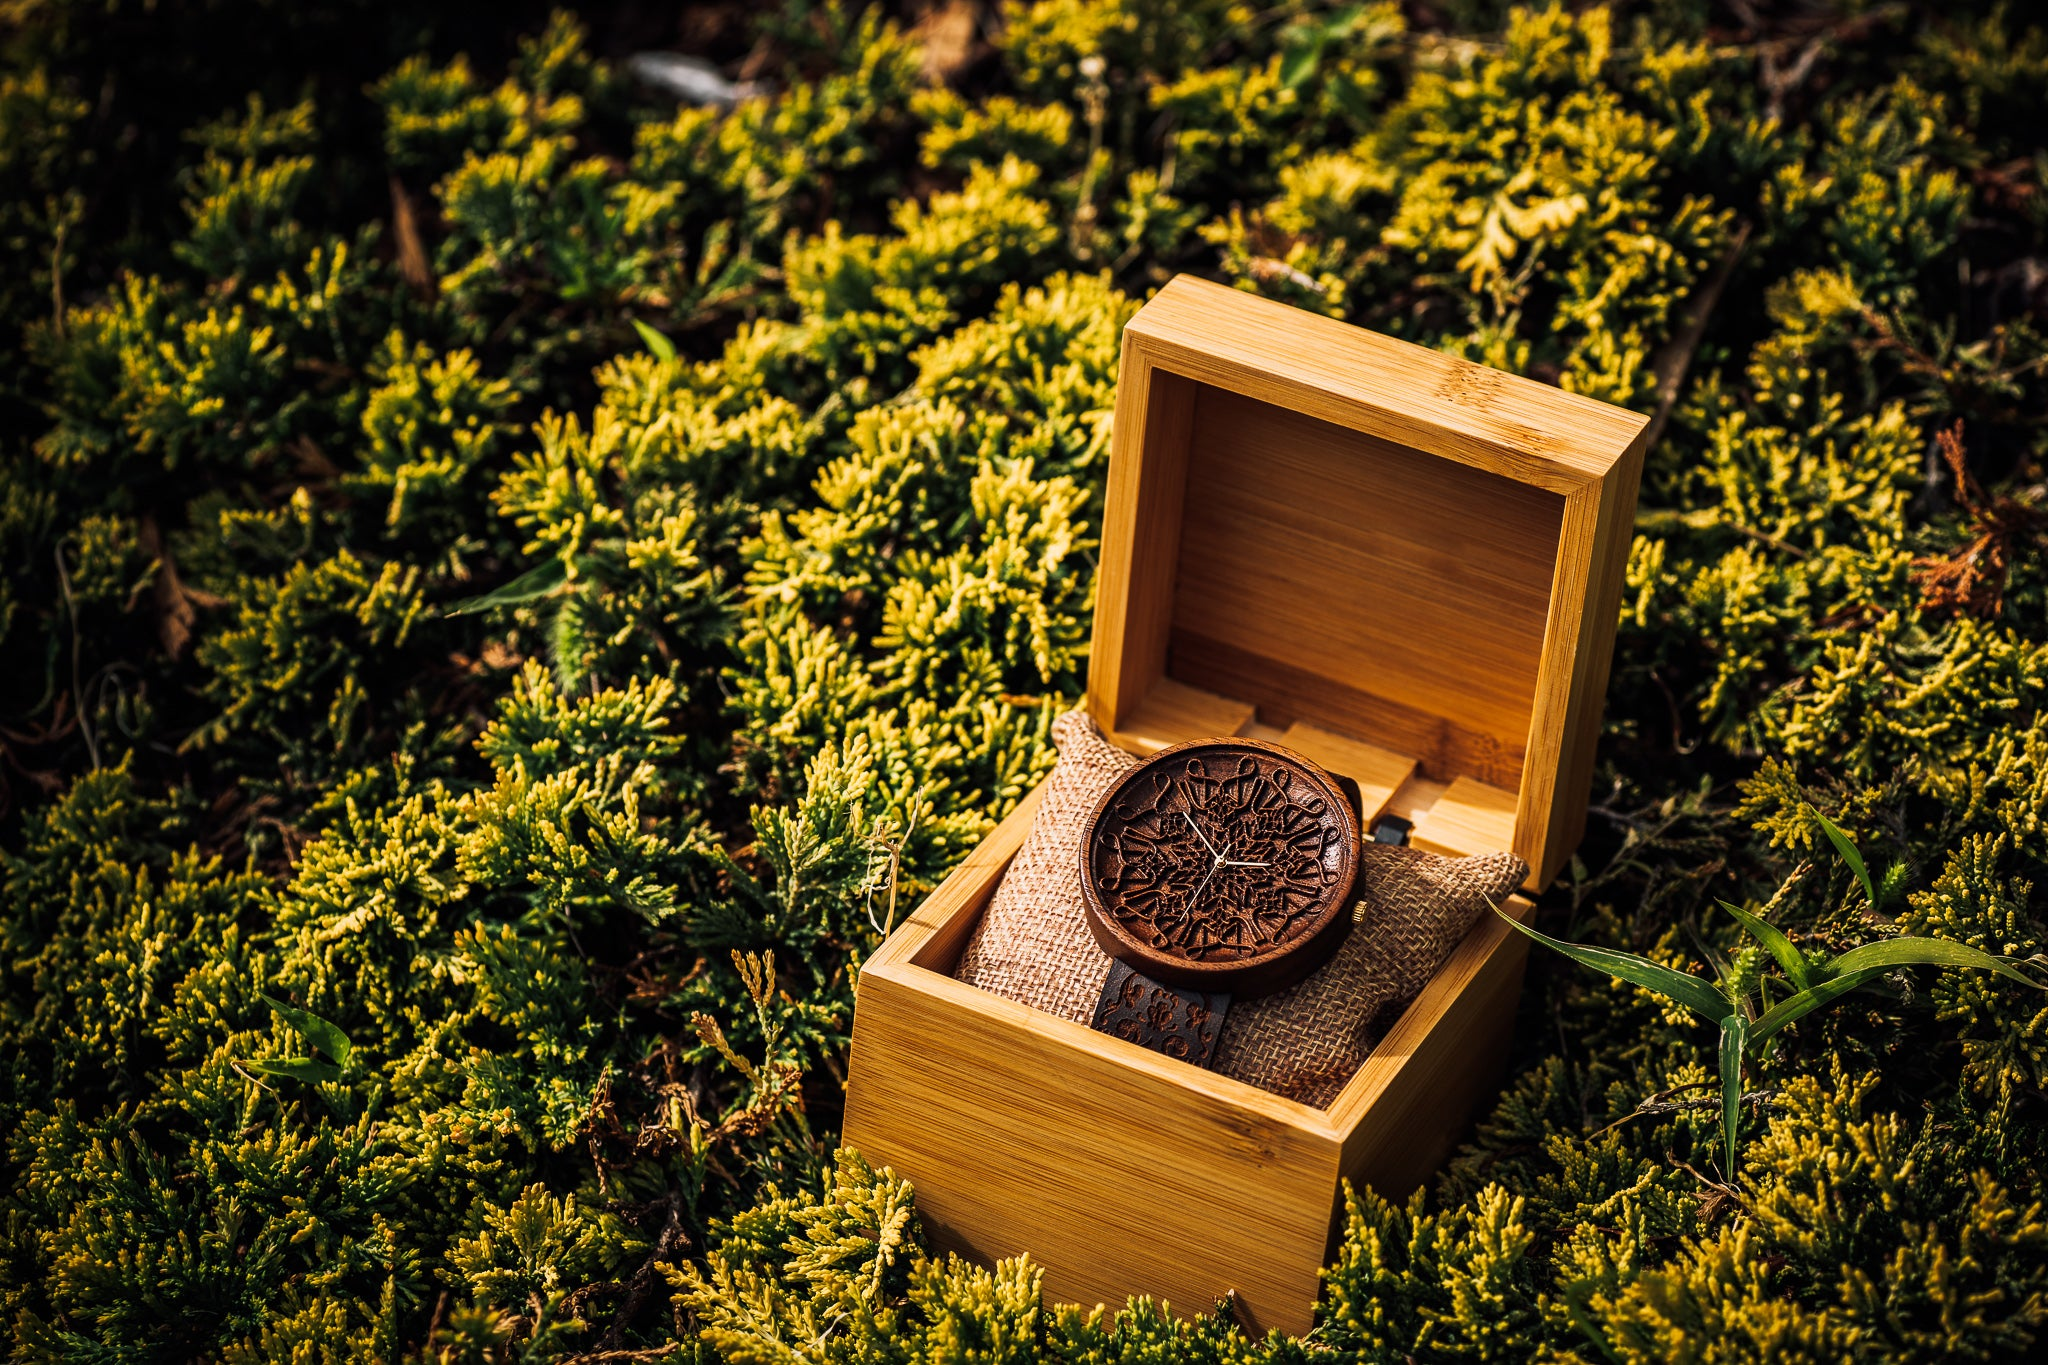 Wooden timepieces | 10 Unexpected Gifts For Brothers That They'll Actually Like